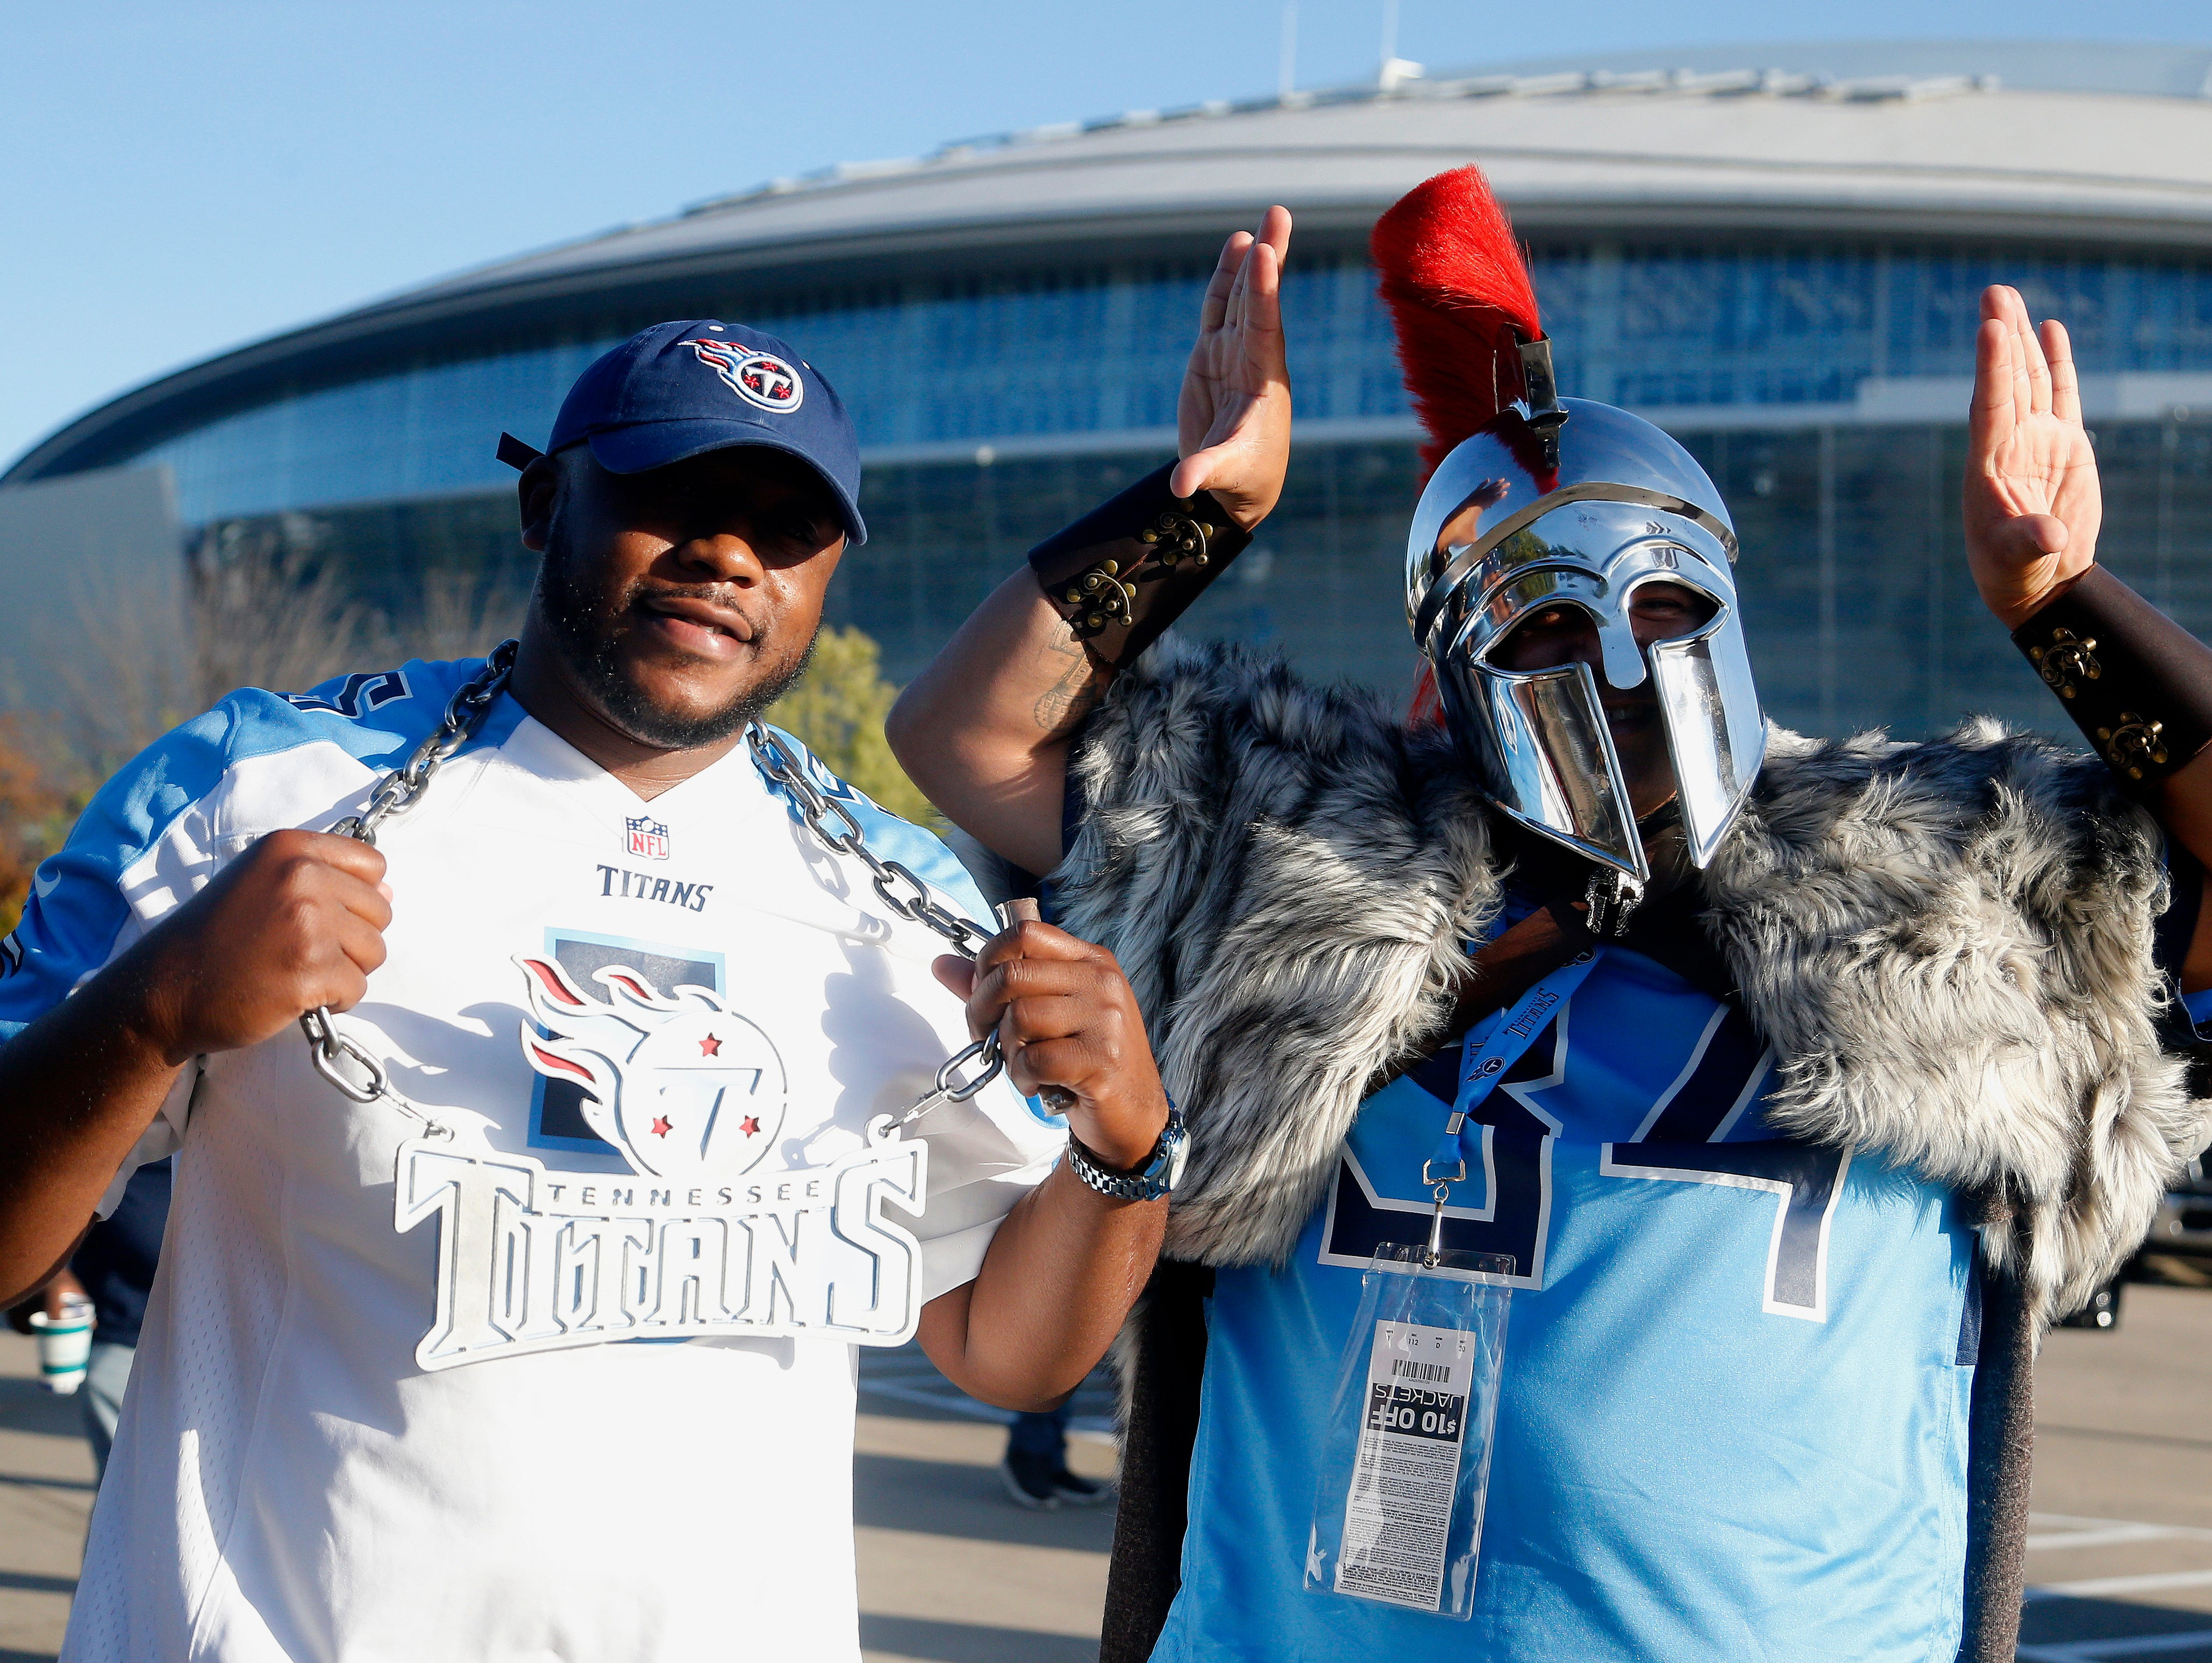 Tennessee Titans fans walk into the stadium before the first half of an NFL football game between the Dallas Cowboys and the Tennessee Titans, Monday, Nov. 5, 2018, in Arlington, Texas.